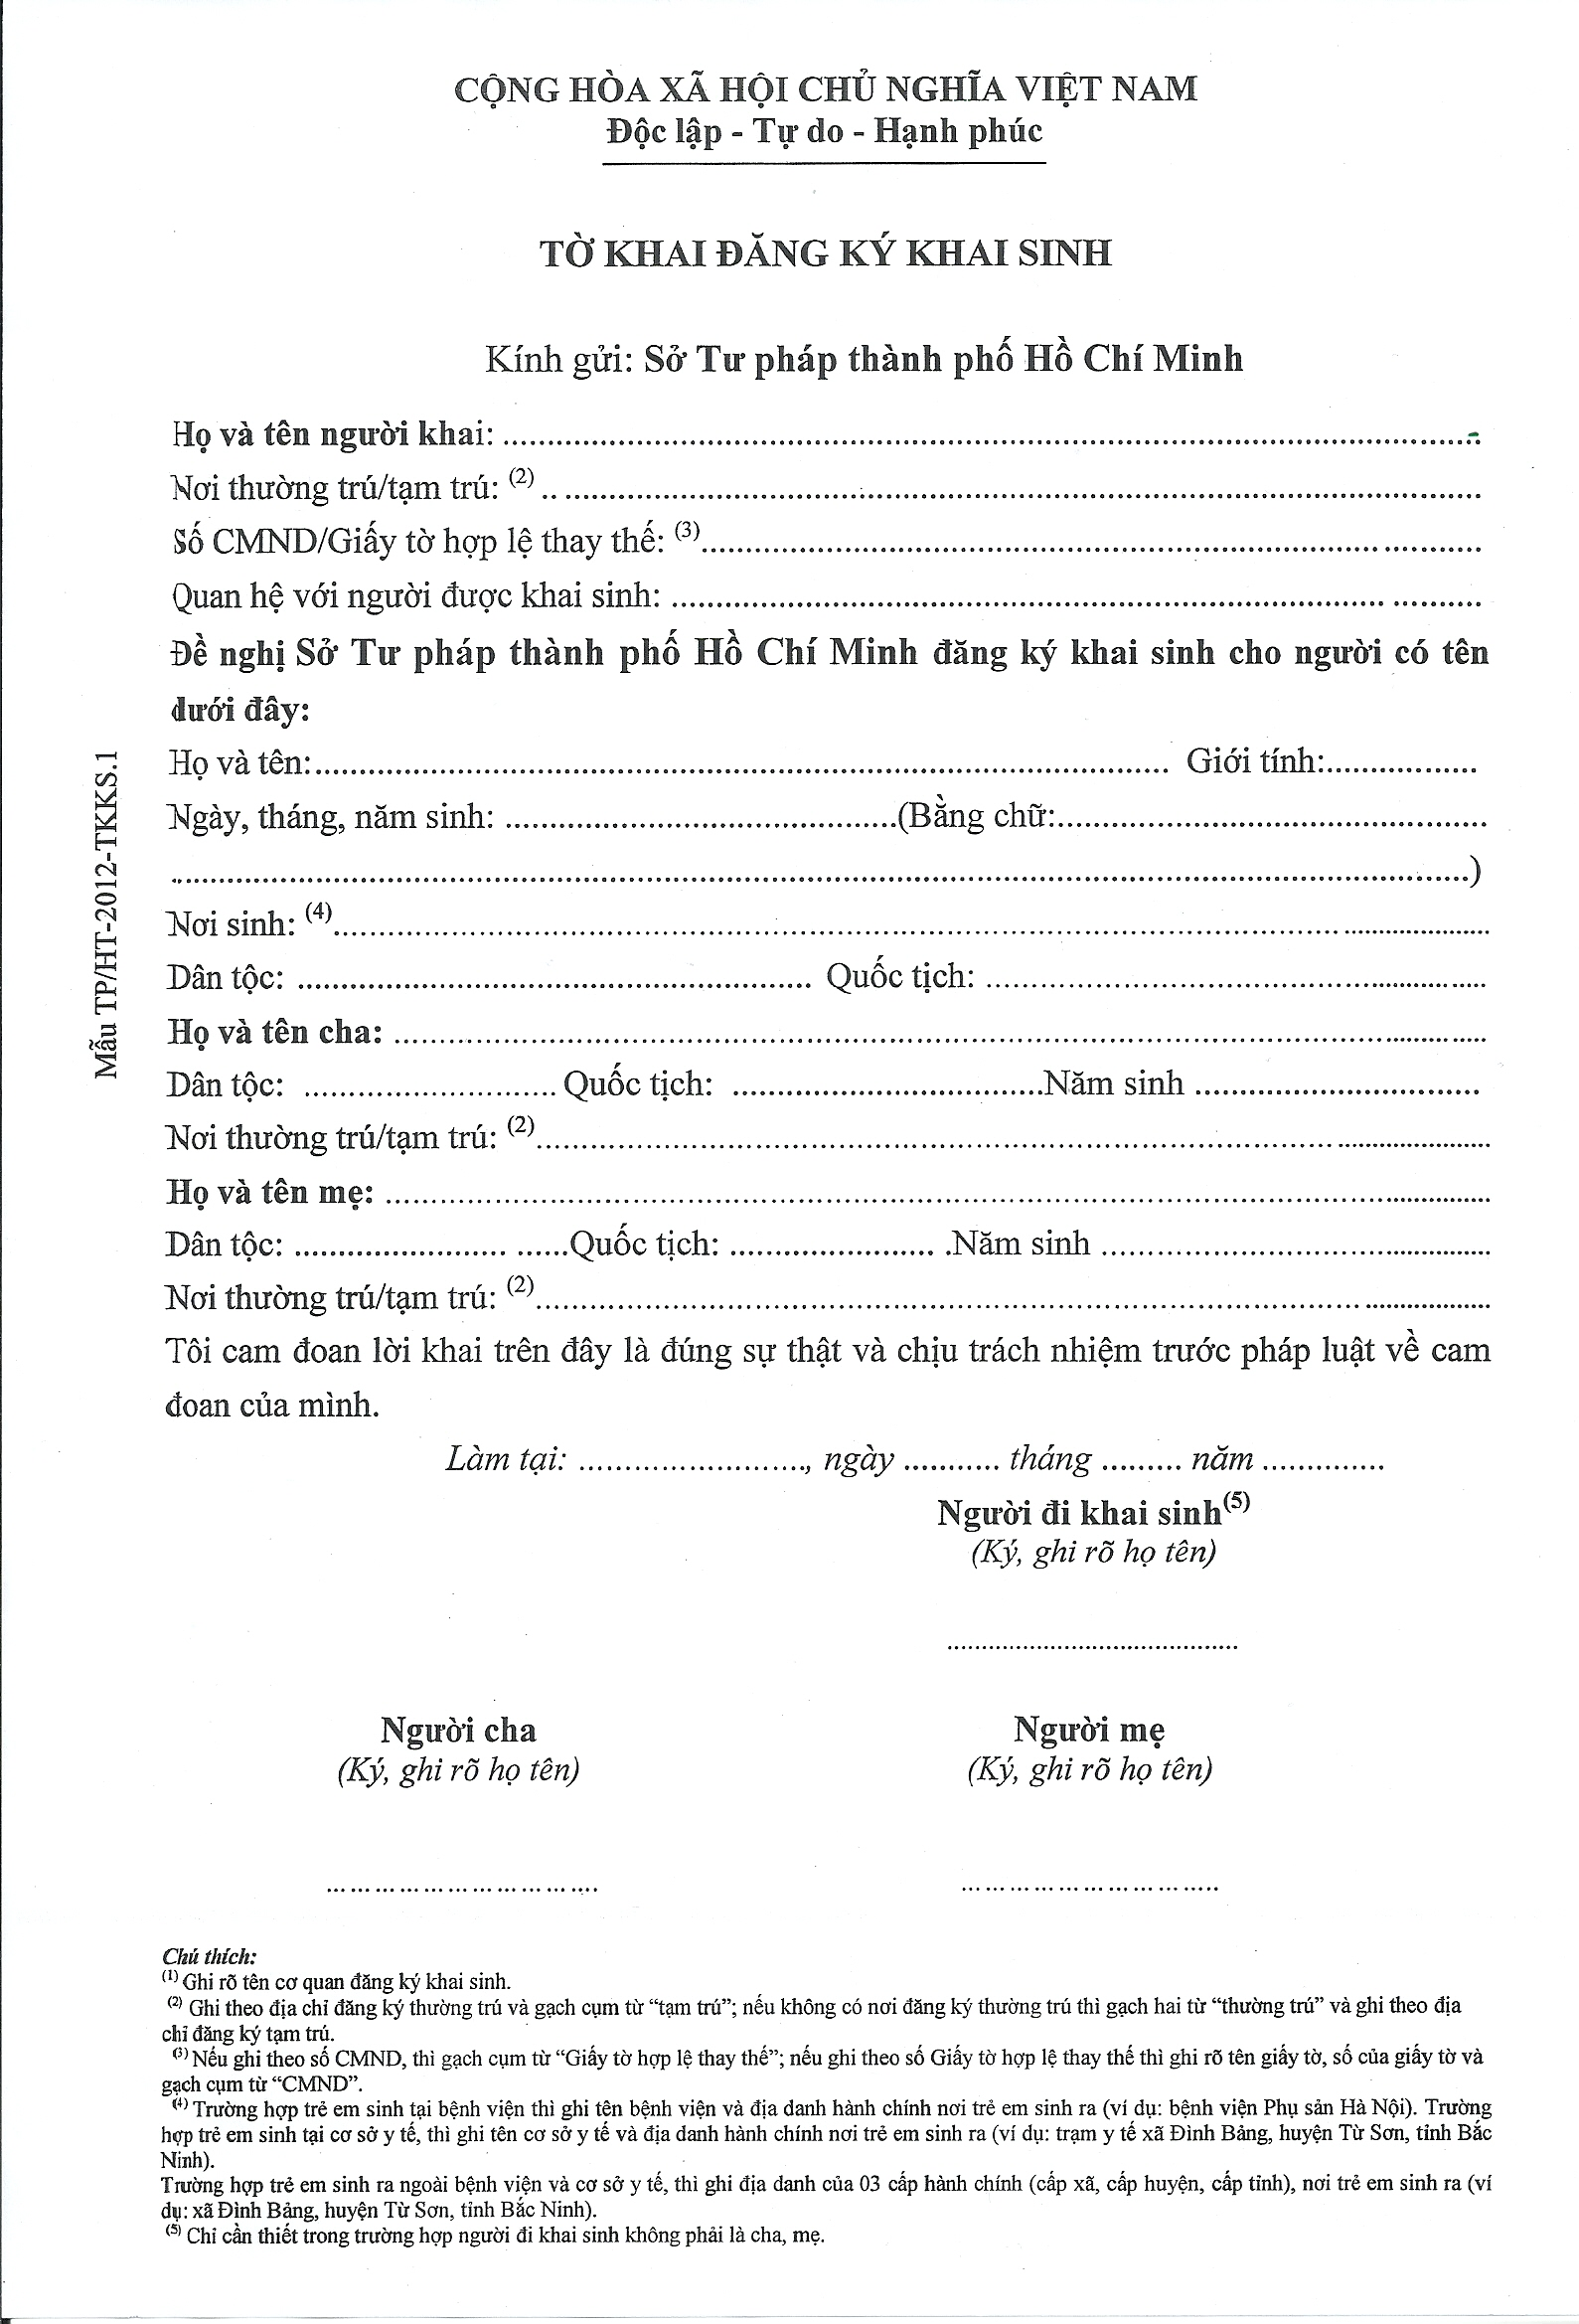 How to get a birth certificate in vietnam a summary hello saigon child birth registration form from the moj aiddatafo Gallery